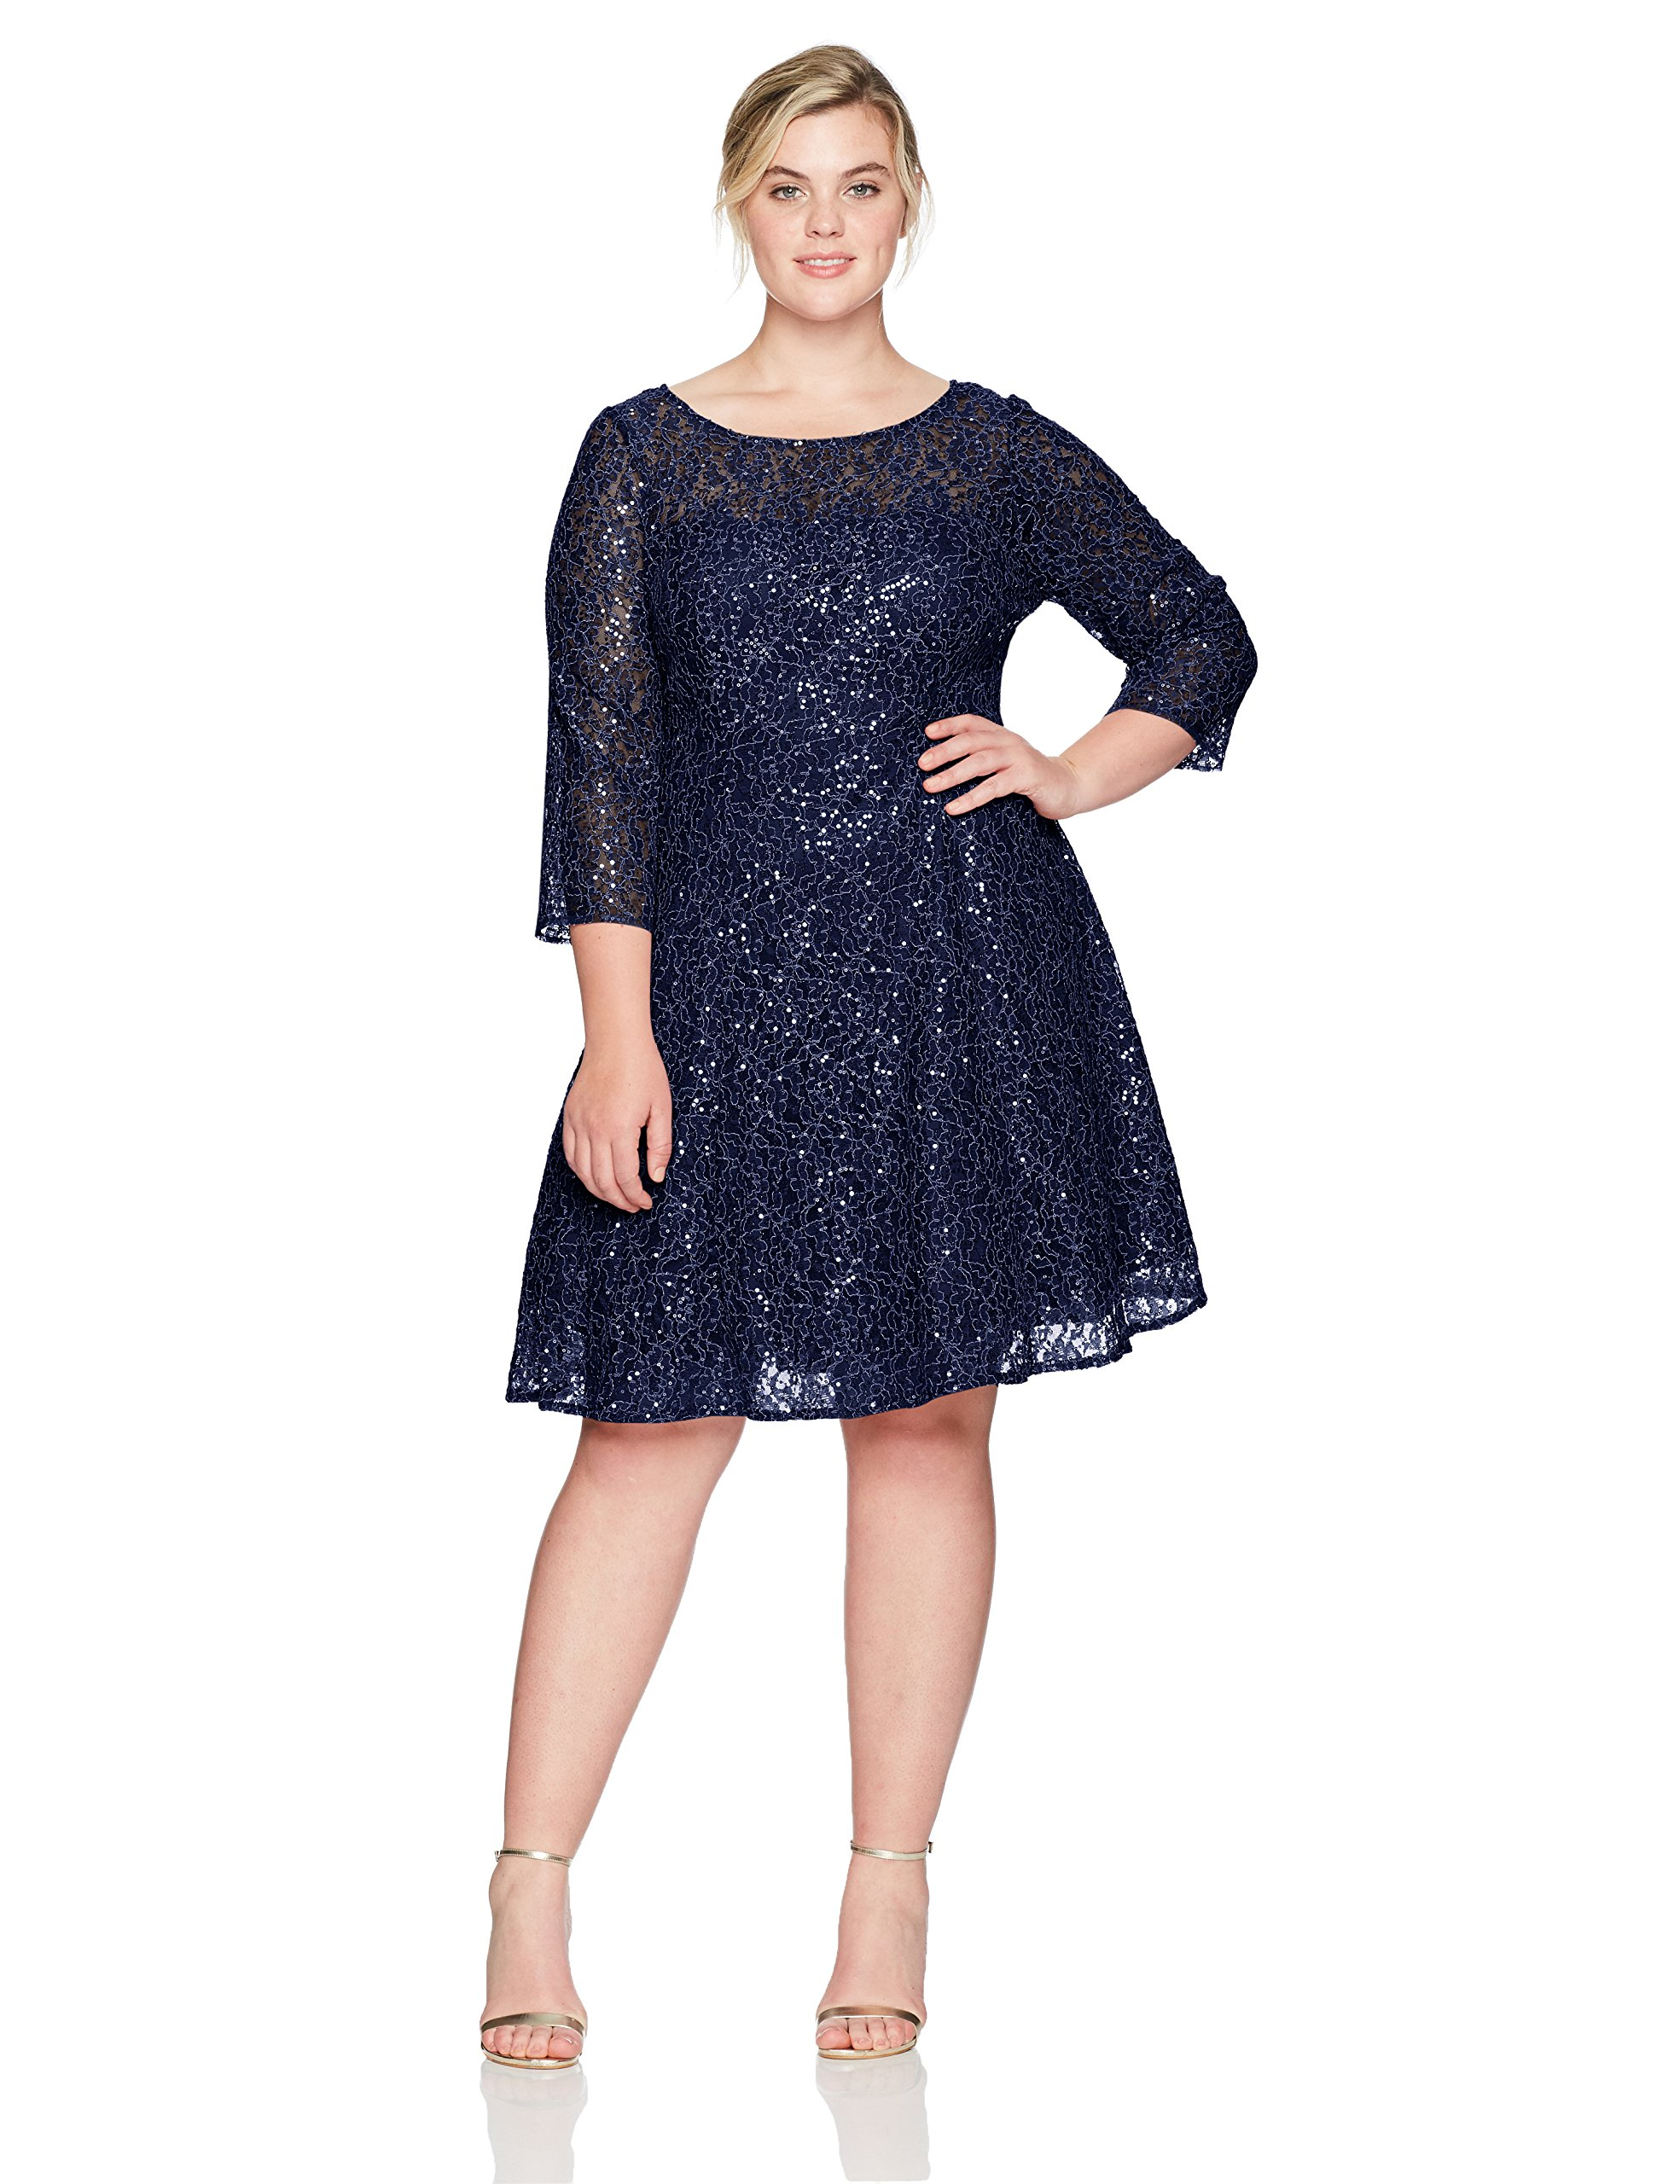 S.L. Fashions Women's Plus Size Lace and Sequin Fit and Flare Dress, Navy, 14W